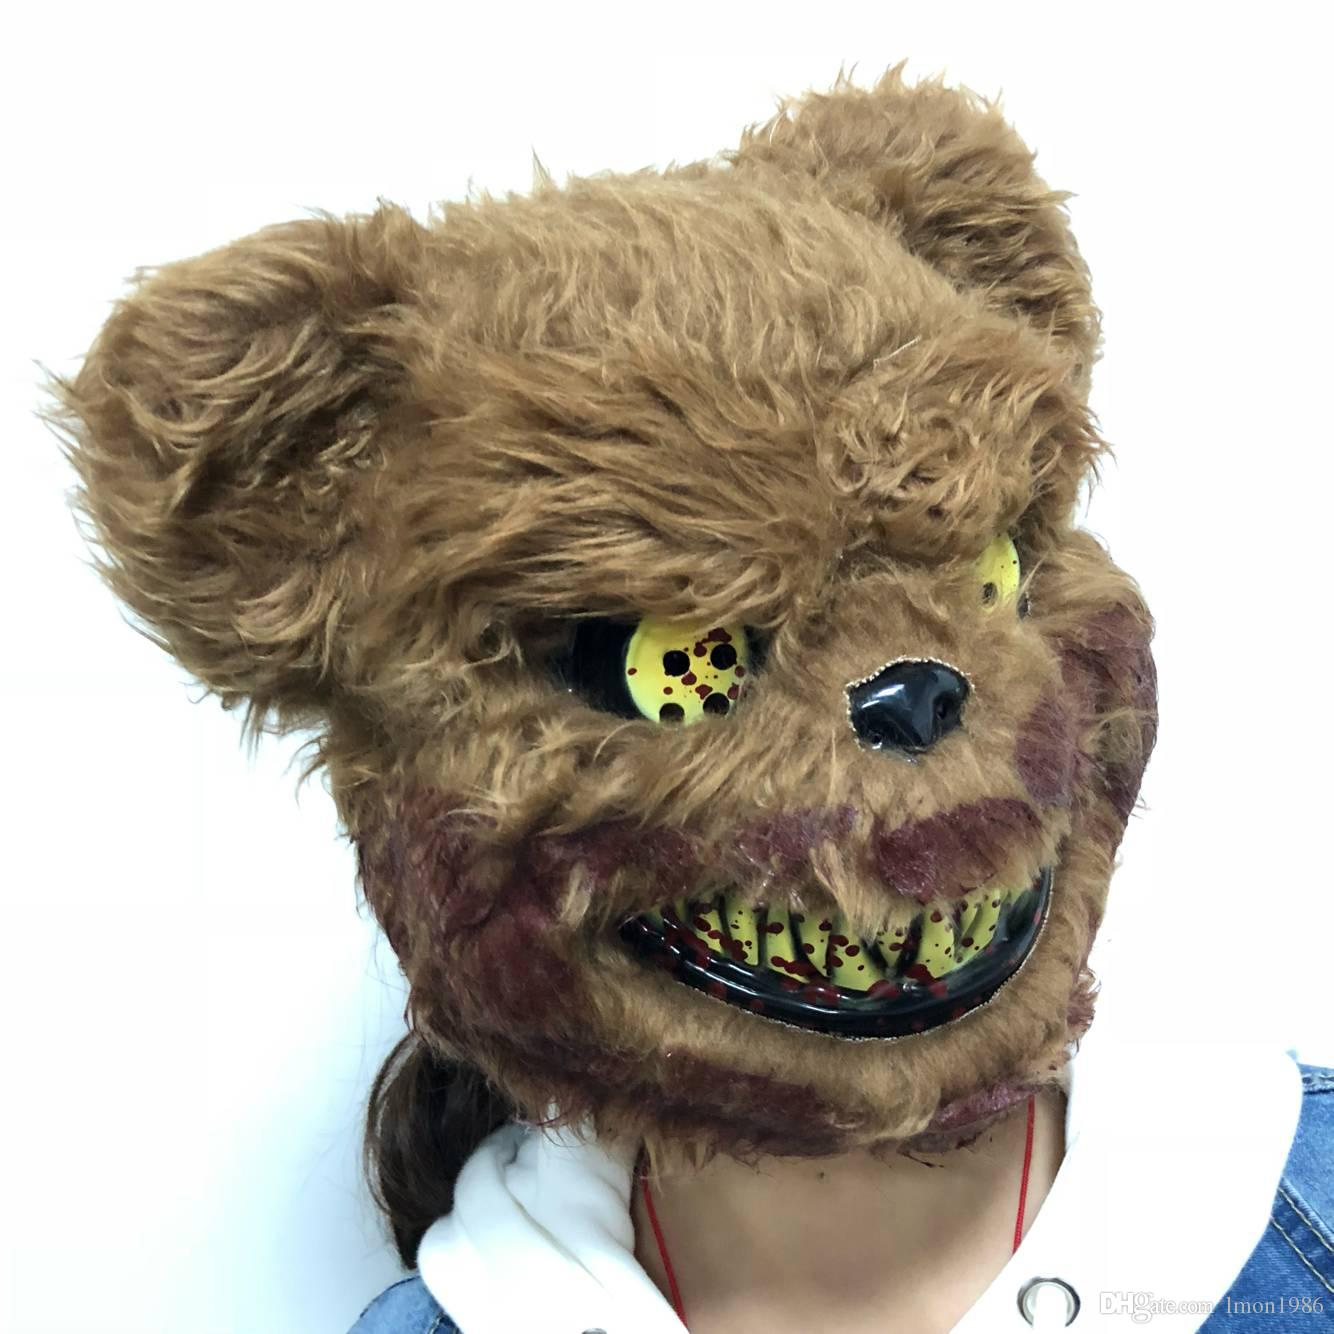 Halloween Party Scary Killer Teddy Bear Mask Adult Evil Psycho Halloween Costume Fancy Dress Plastic Mask